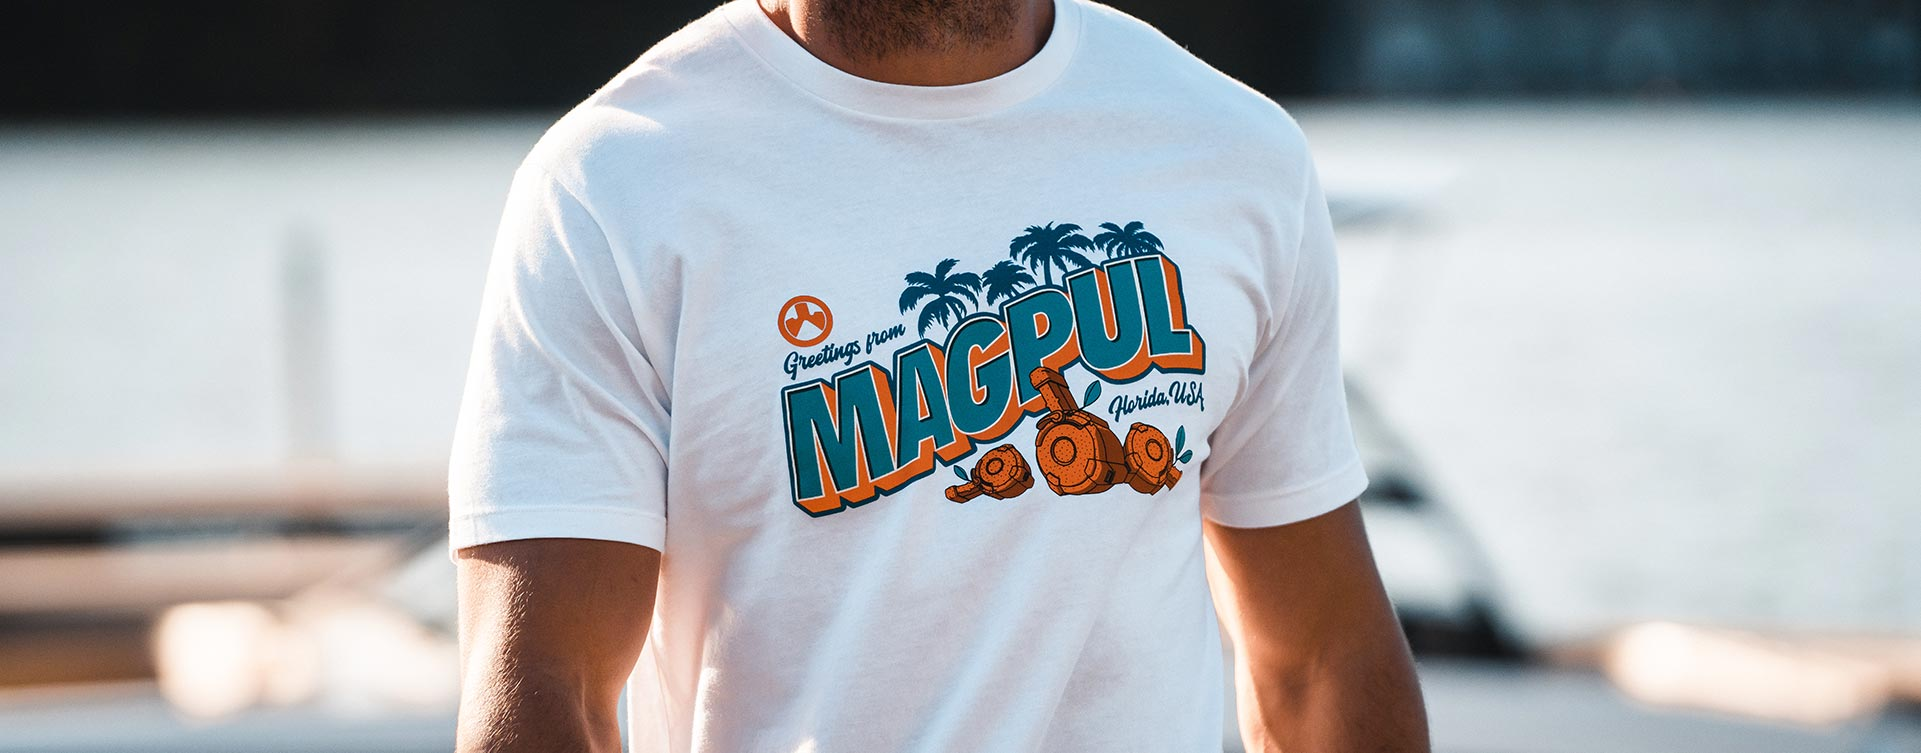 Magpul Fresh Squeezed Freedom CVC T-Shirt on non-descript man outdoors near docked boat